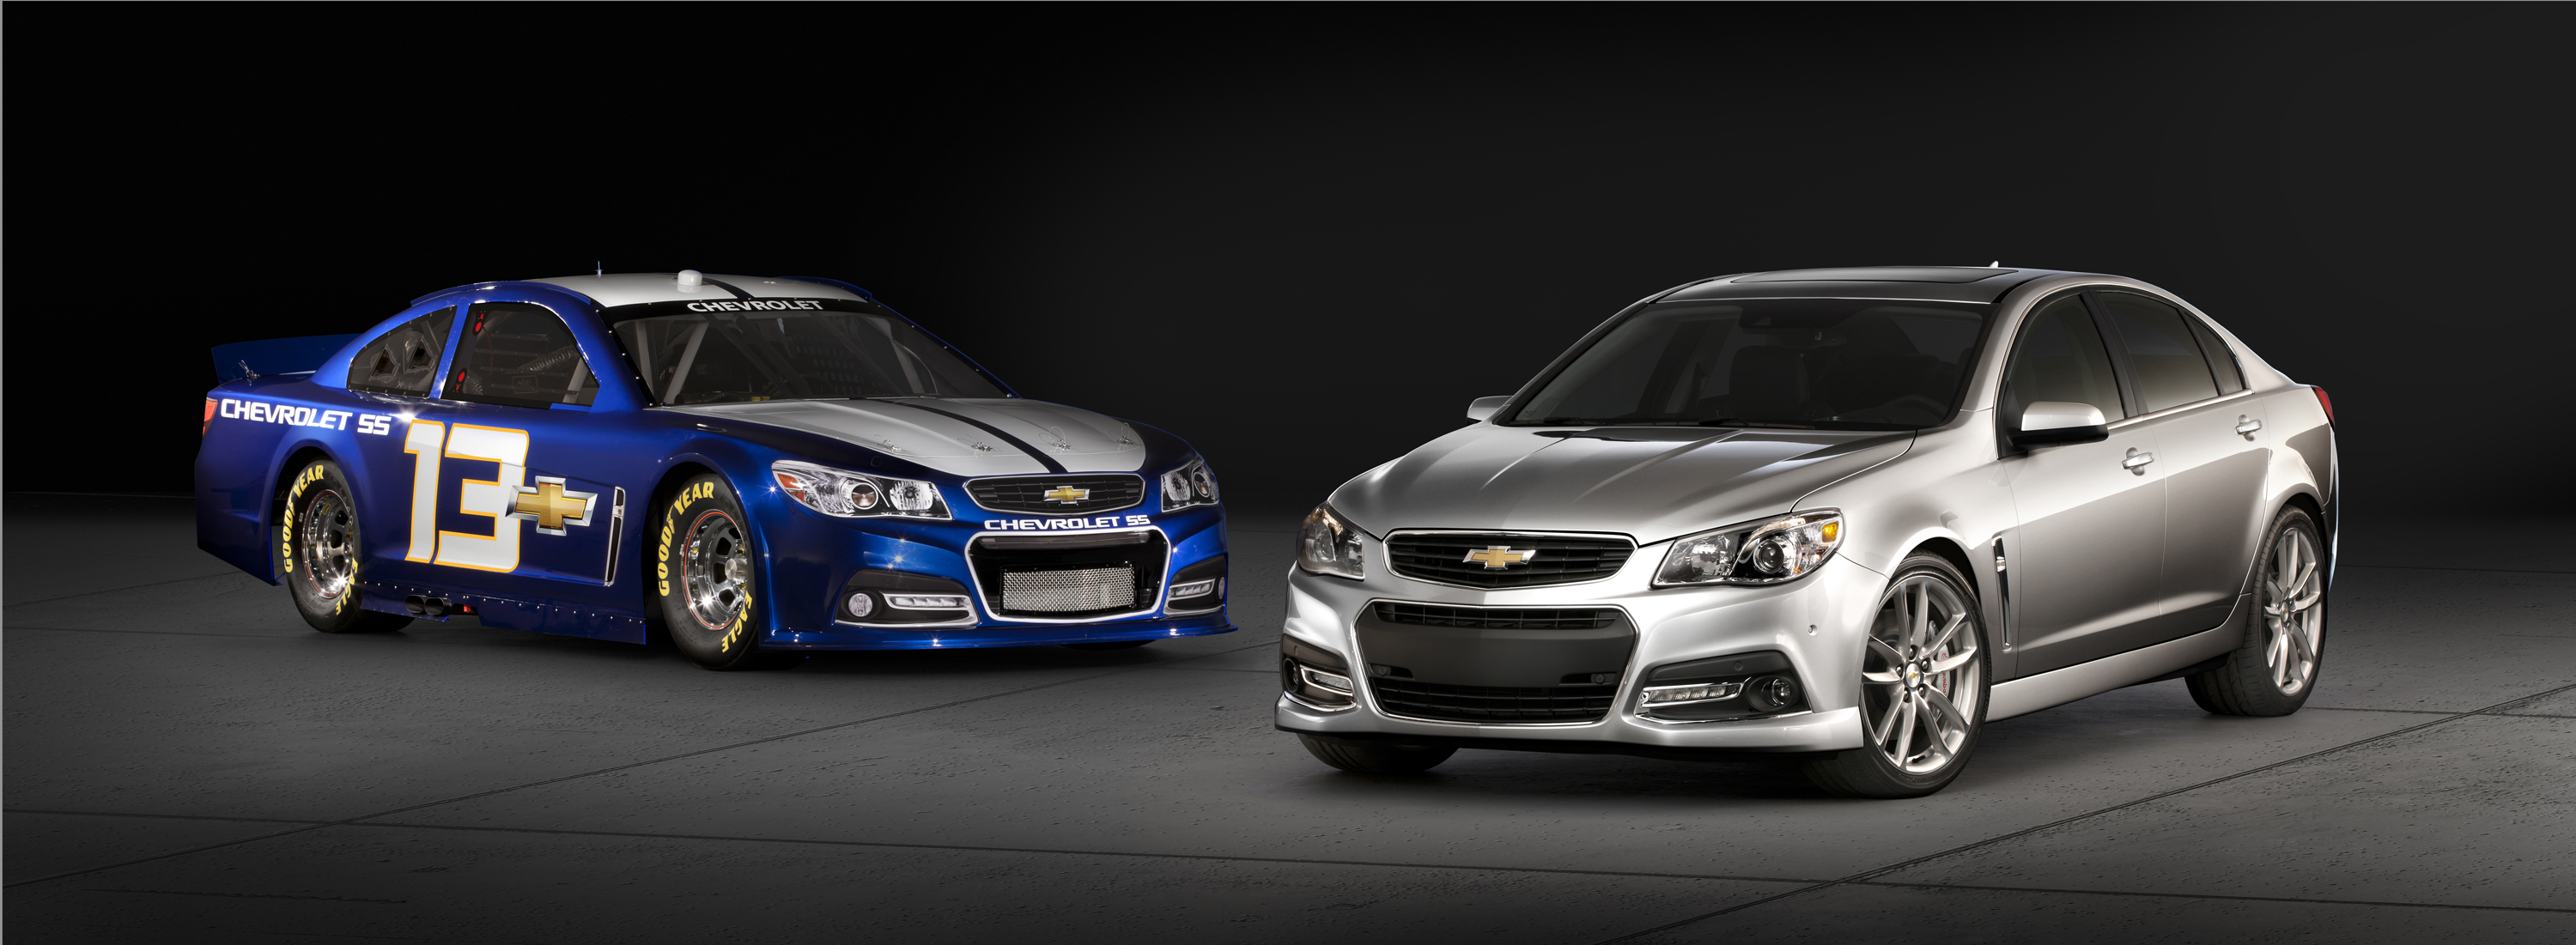 2014 chevrolet ss performance sedan with racing dna daily drivereport. Black Bedroom Furniture Sets. Home Design Ideas